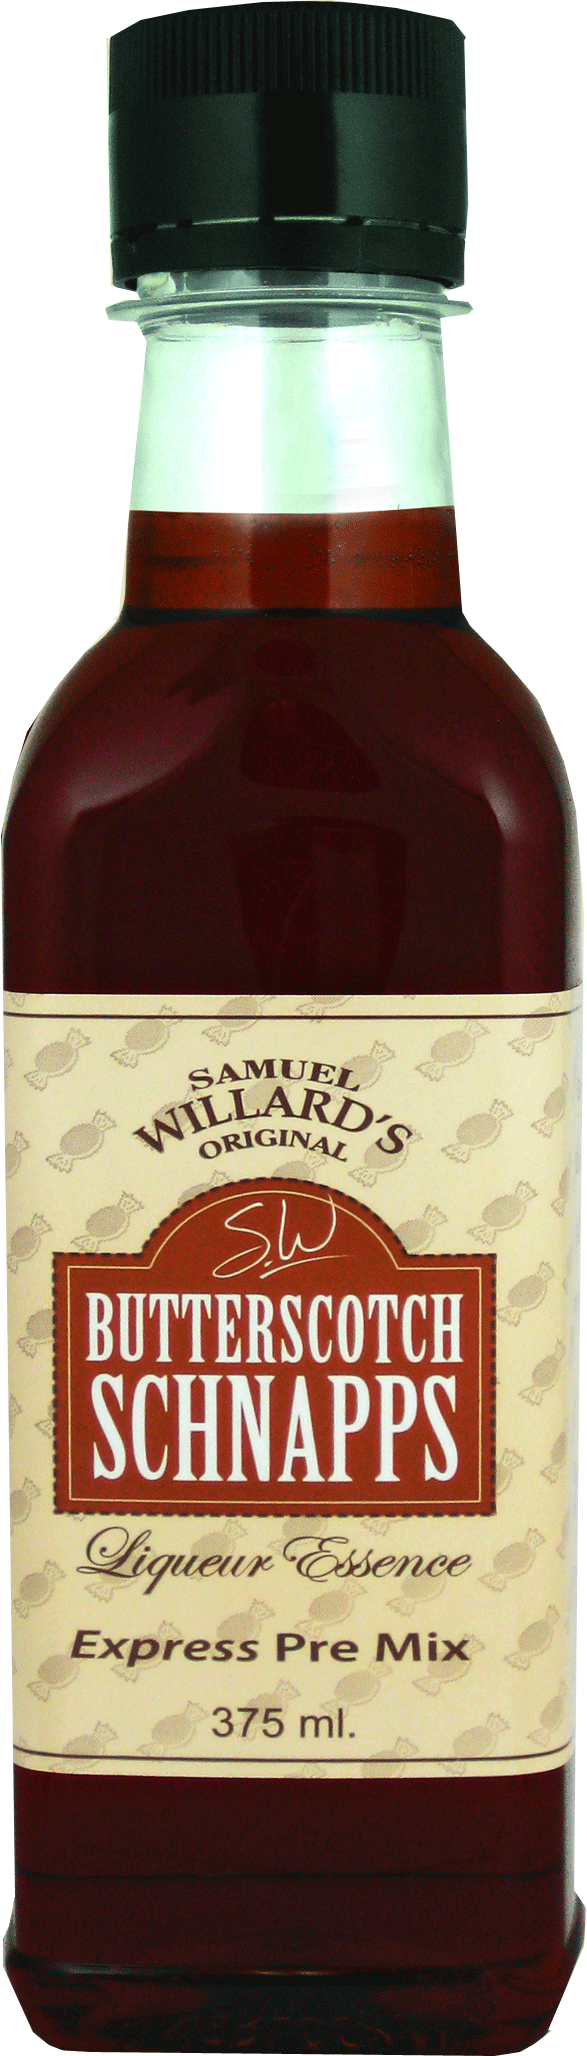 Willards Butterscotch Schnapps Liqueur